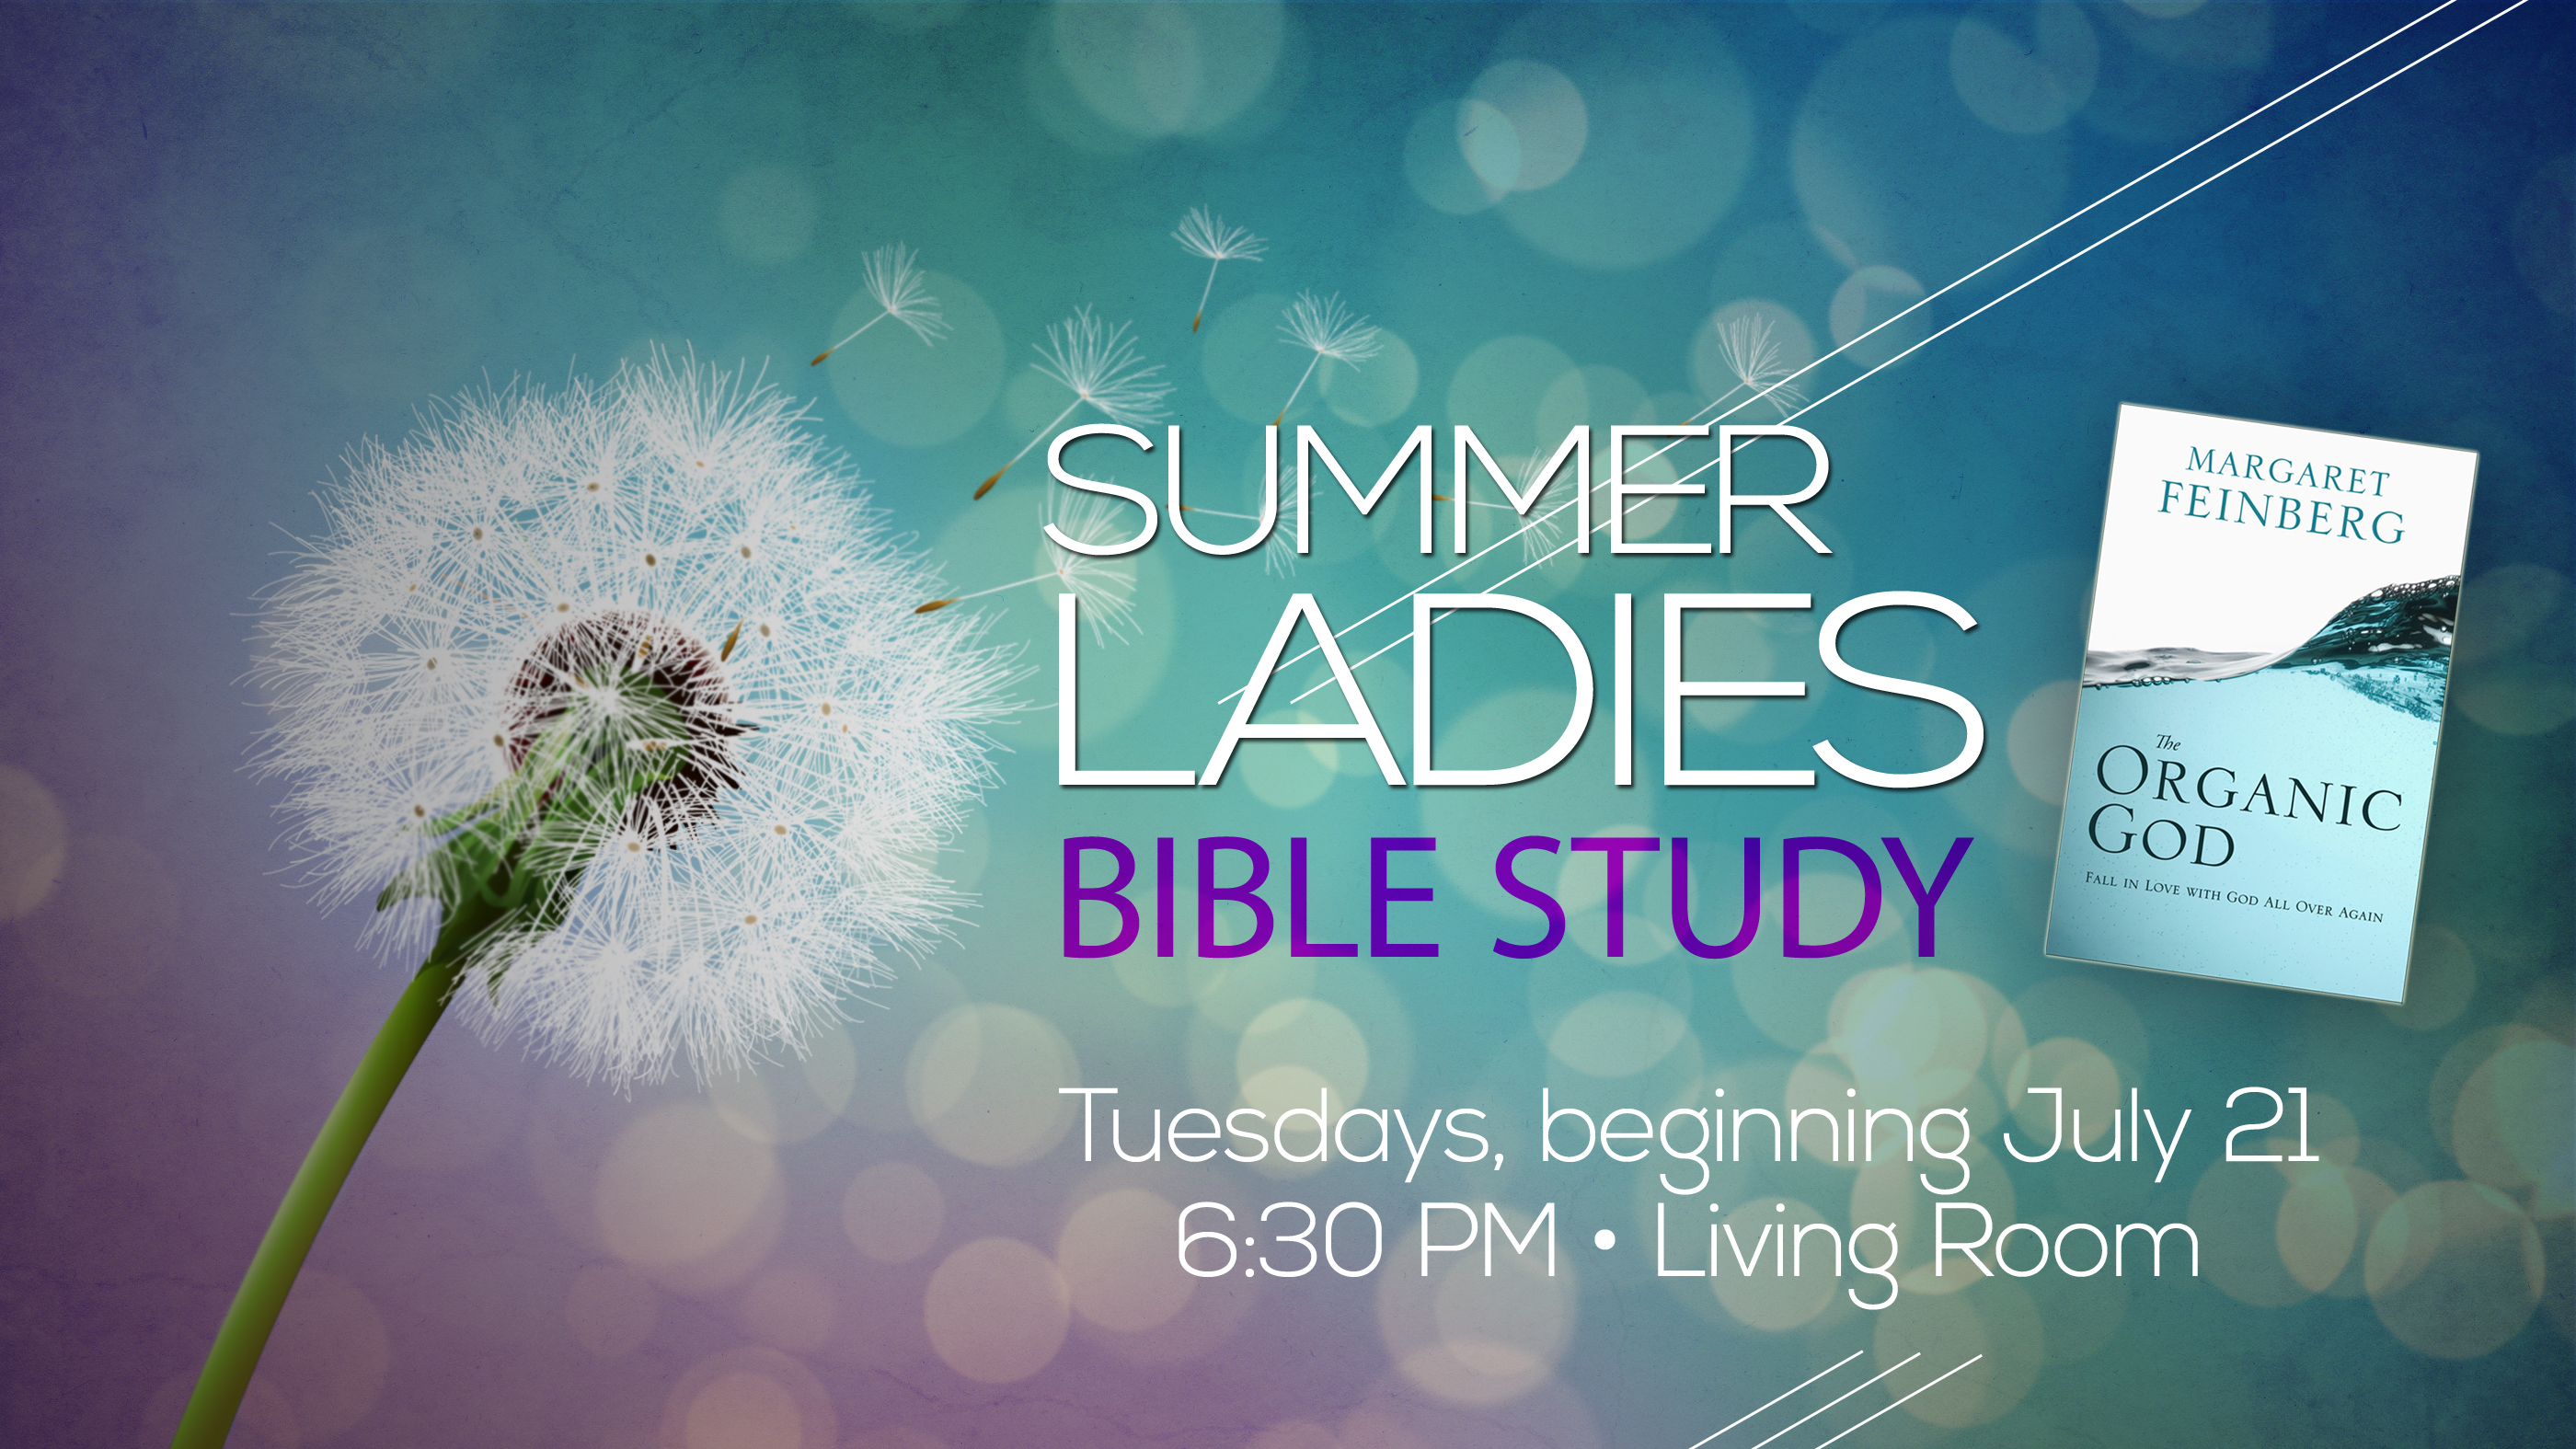 Summer Ladies Bible Study